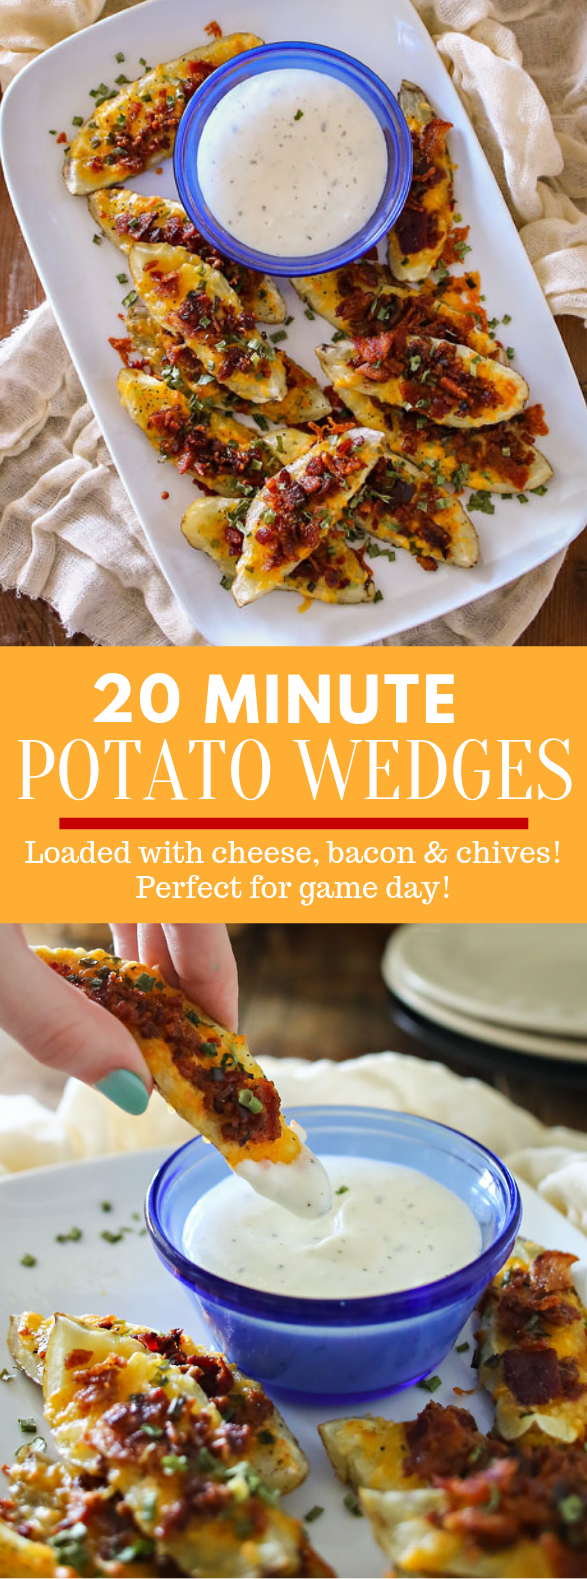 20 Minute Potato Wedges #gameday #snack